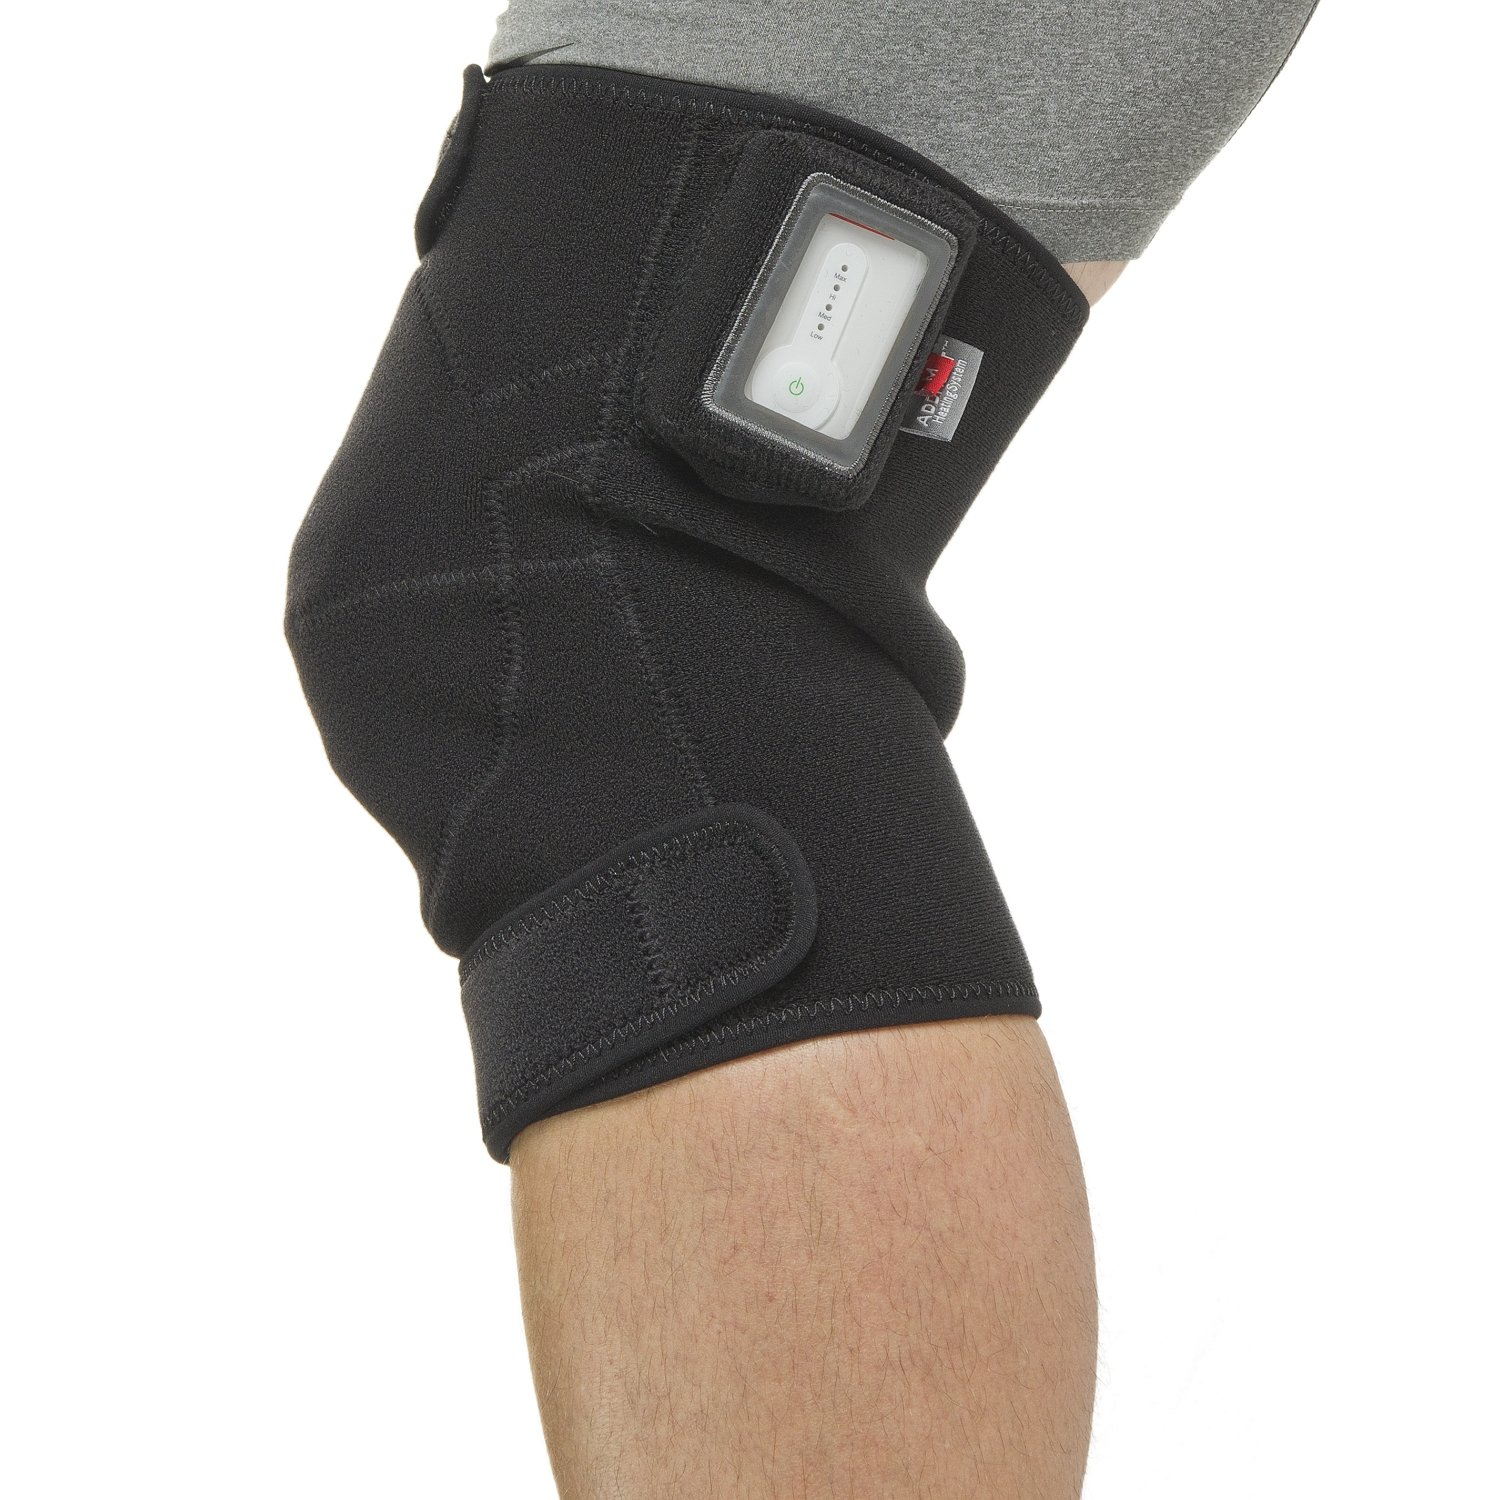 Venture Heated Clothing SH-35M Heated Knee Wrap Max by Venture Heated Clothing